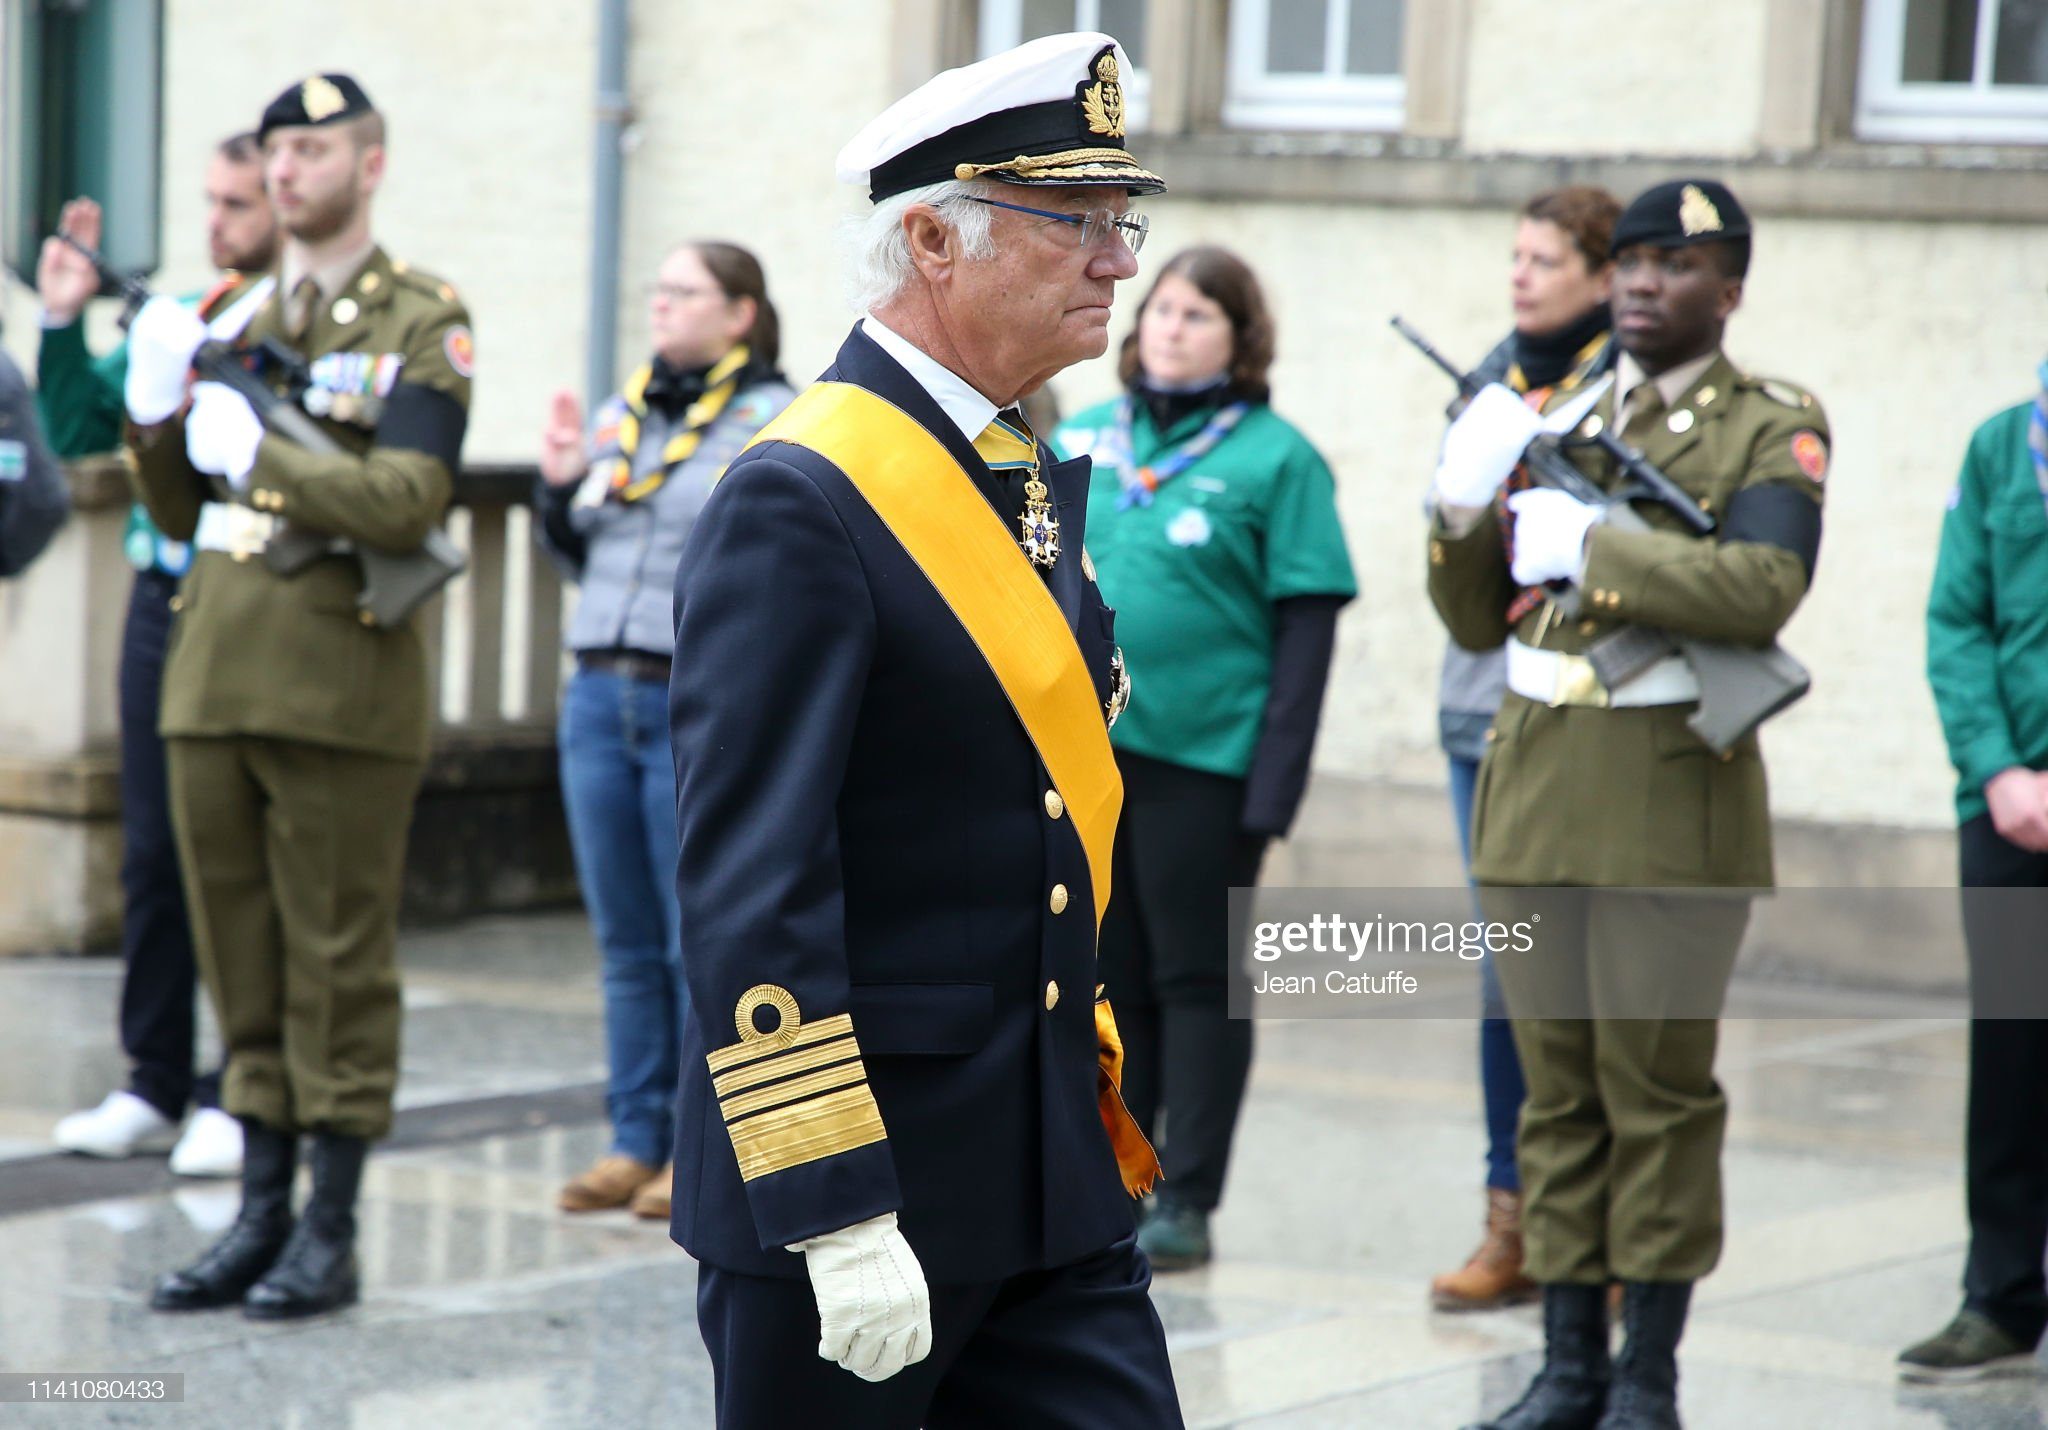 Похороны Великого Герцога Жана https://media.gettyimages.com/photos/king-carl-xvi-gustaf-of-sweden-arrives-for-the-funeral-of-grand-duke-picture-id1141080433?s=2048x2048